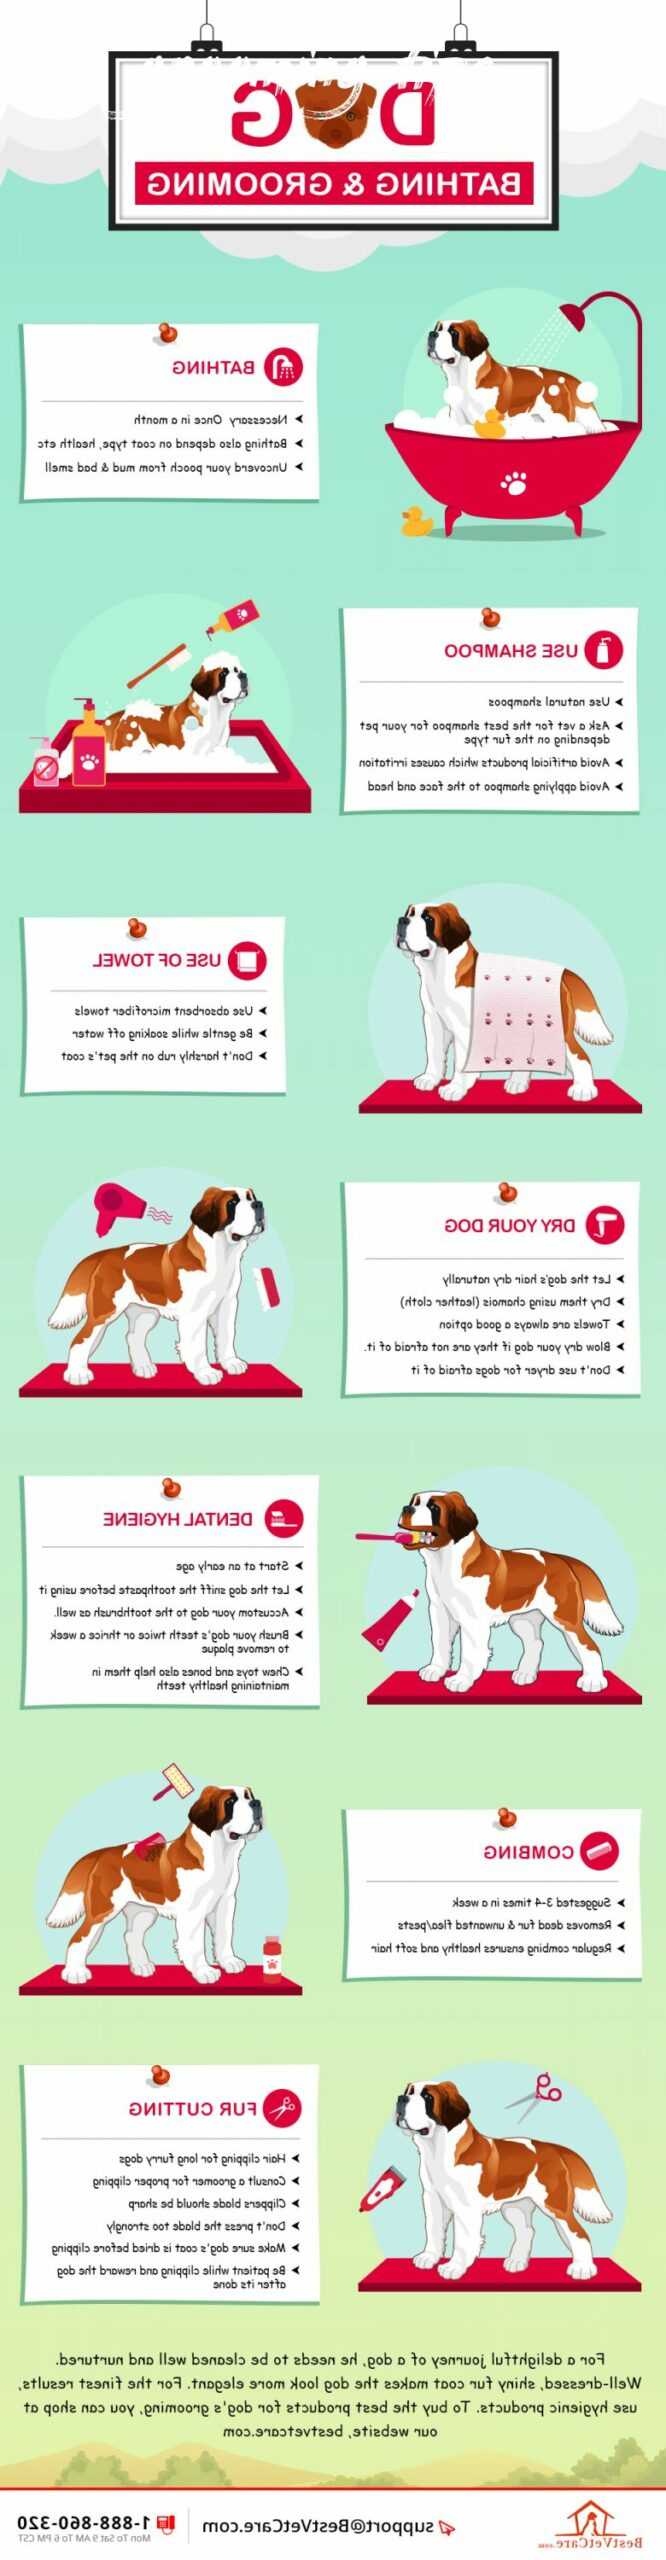 dog grooming tips Overview